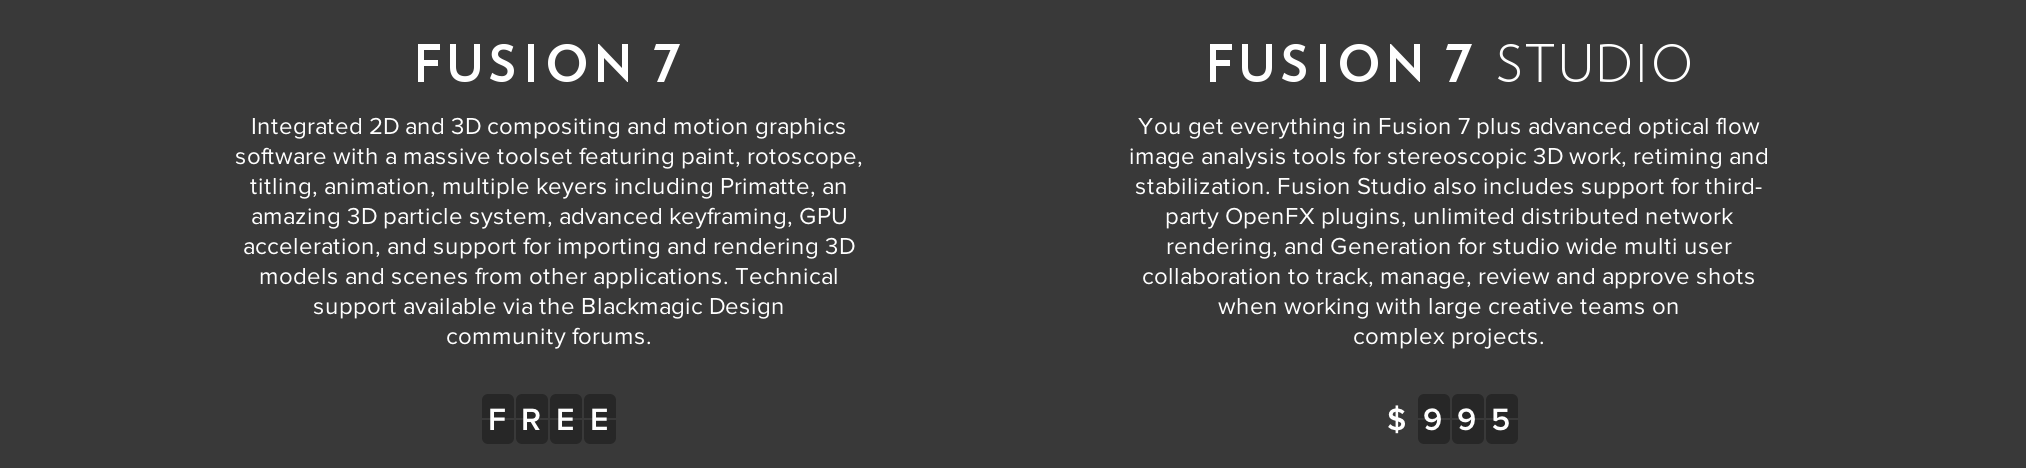 Blackmagic Releases Eyeon Fusion 7 Free to VFX Artists - The